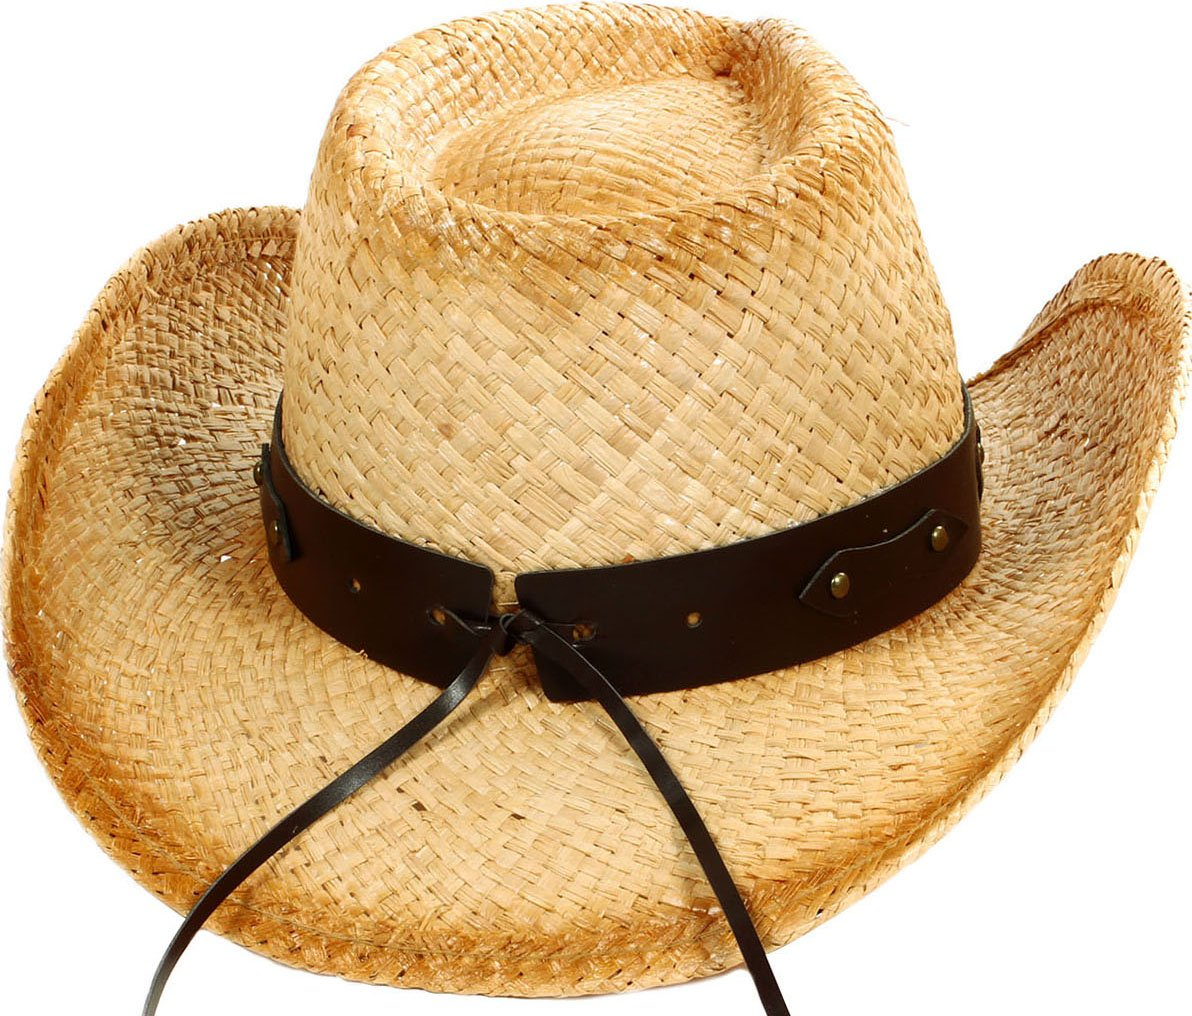 YoungLove Men and Women Costume Straw Cowboy Hat with Decor,Nature_Bull by YoungLove (Image #3)